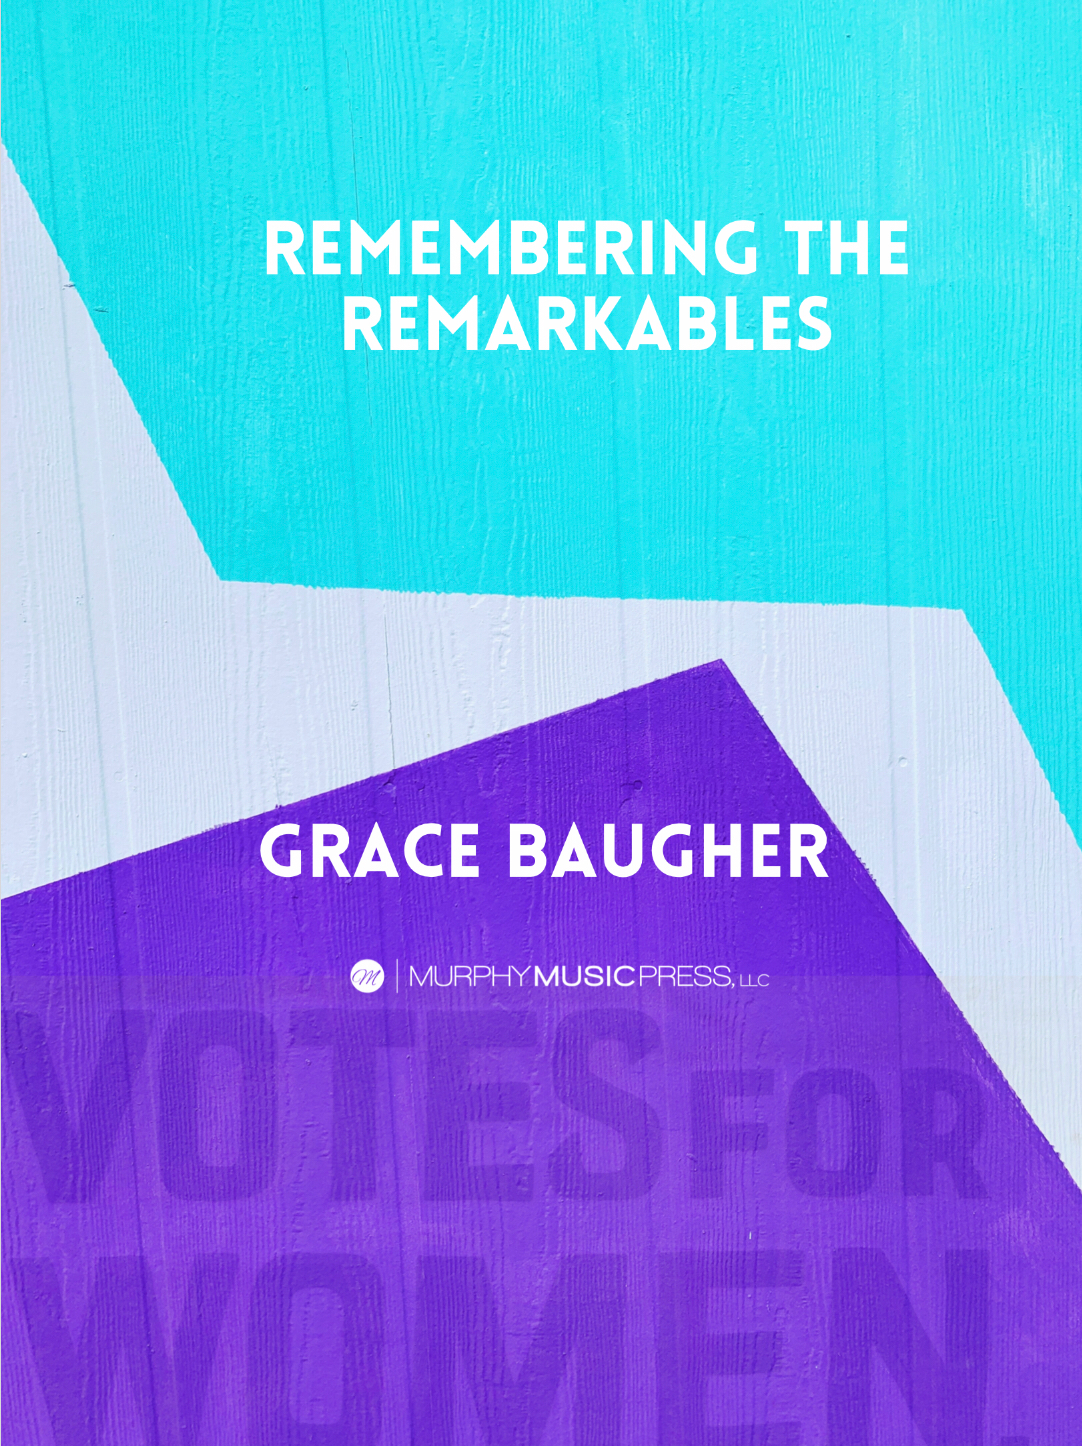 Remembering The Remarkables by Grace Baugher